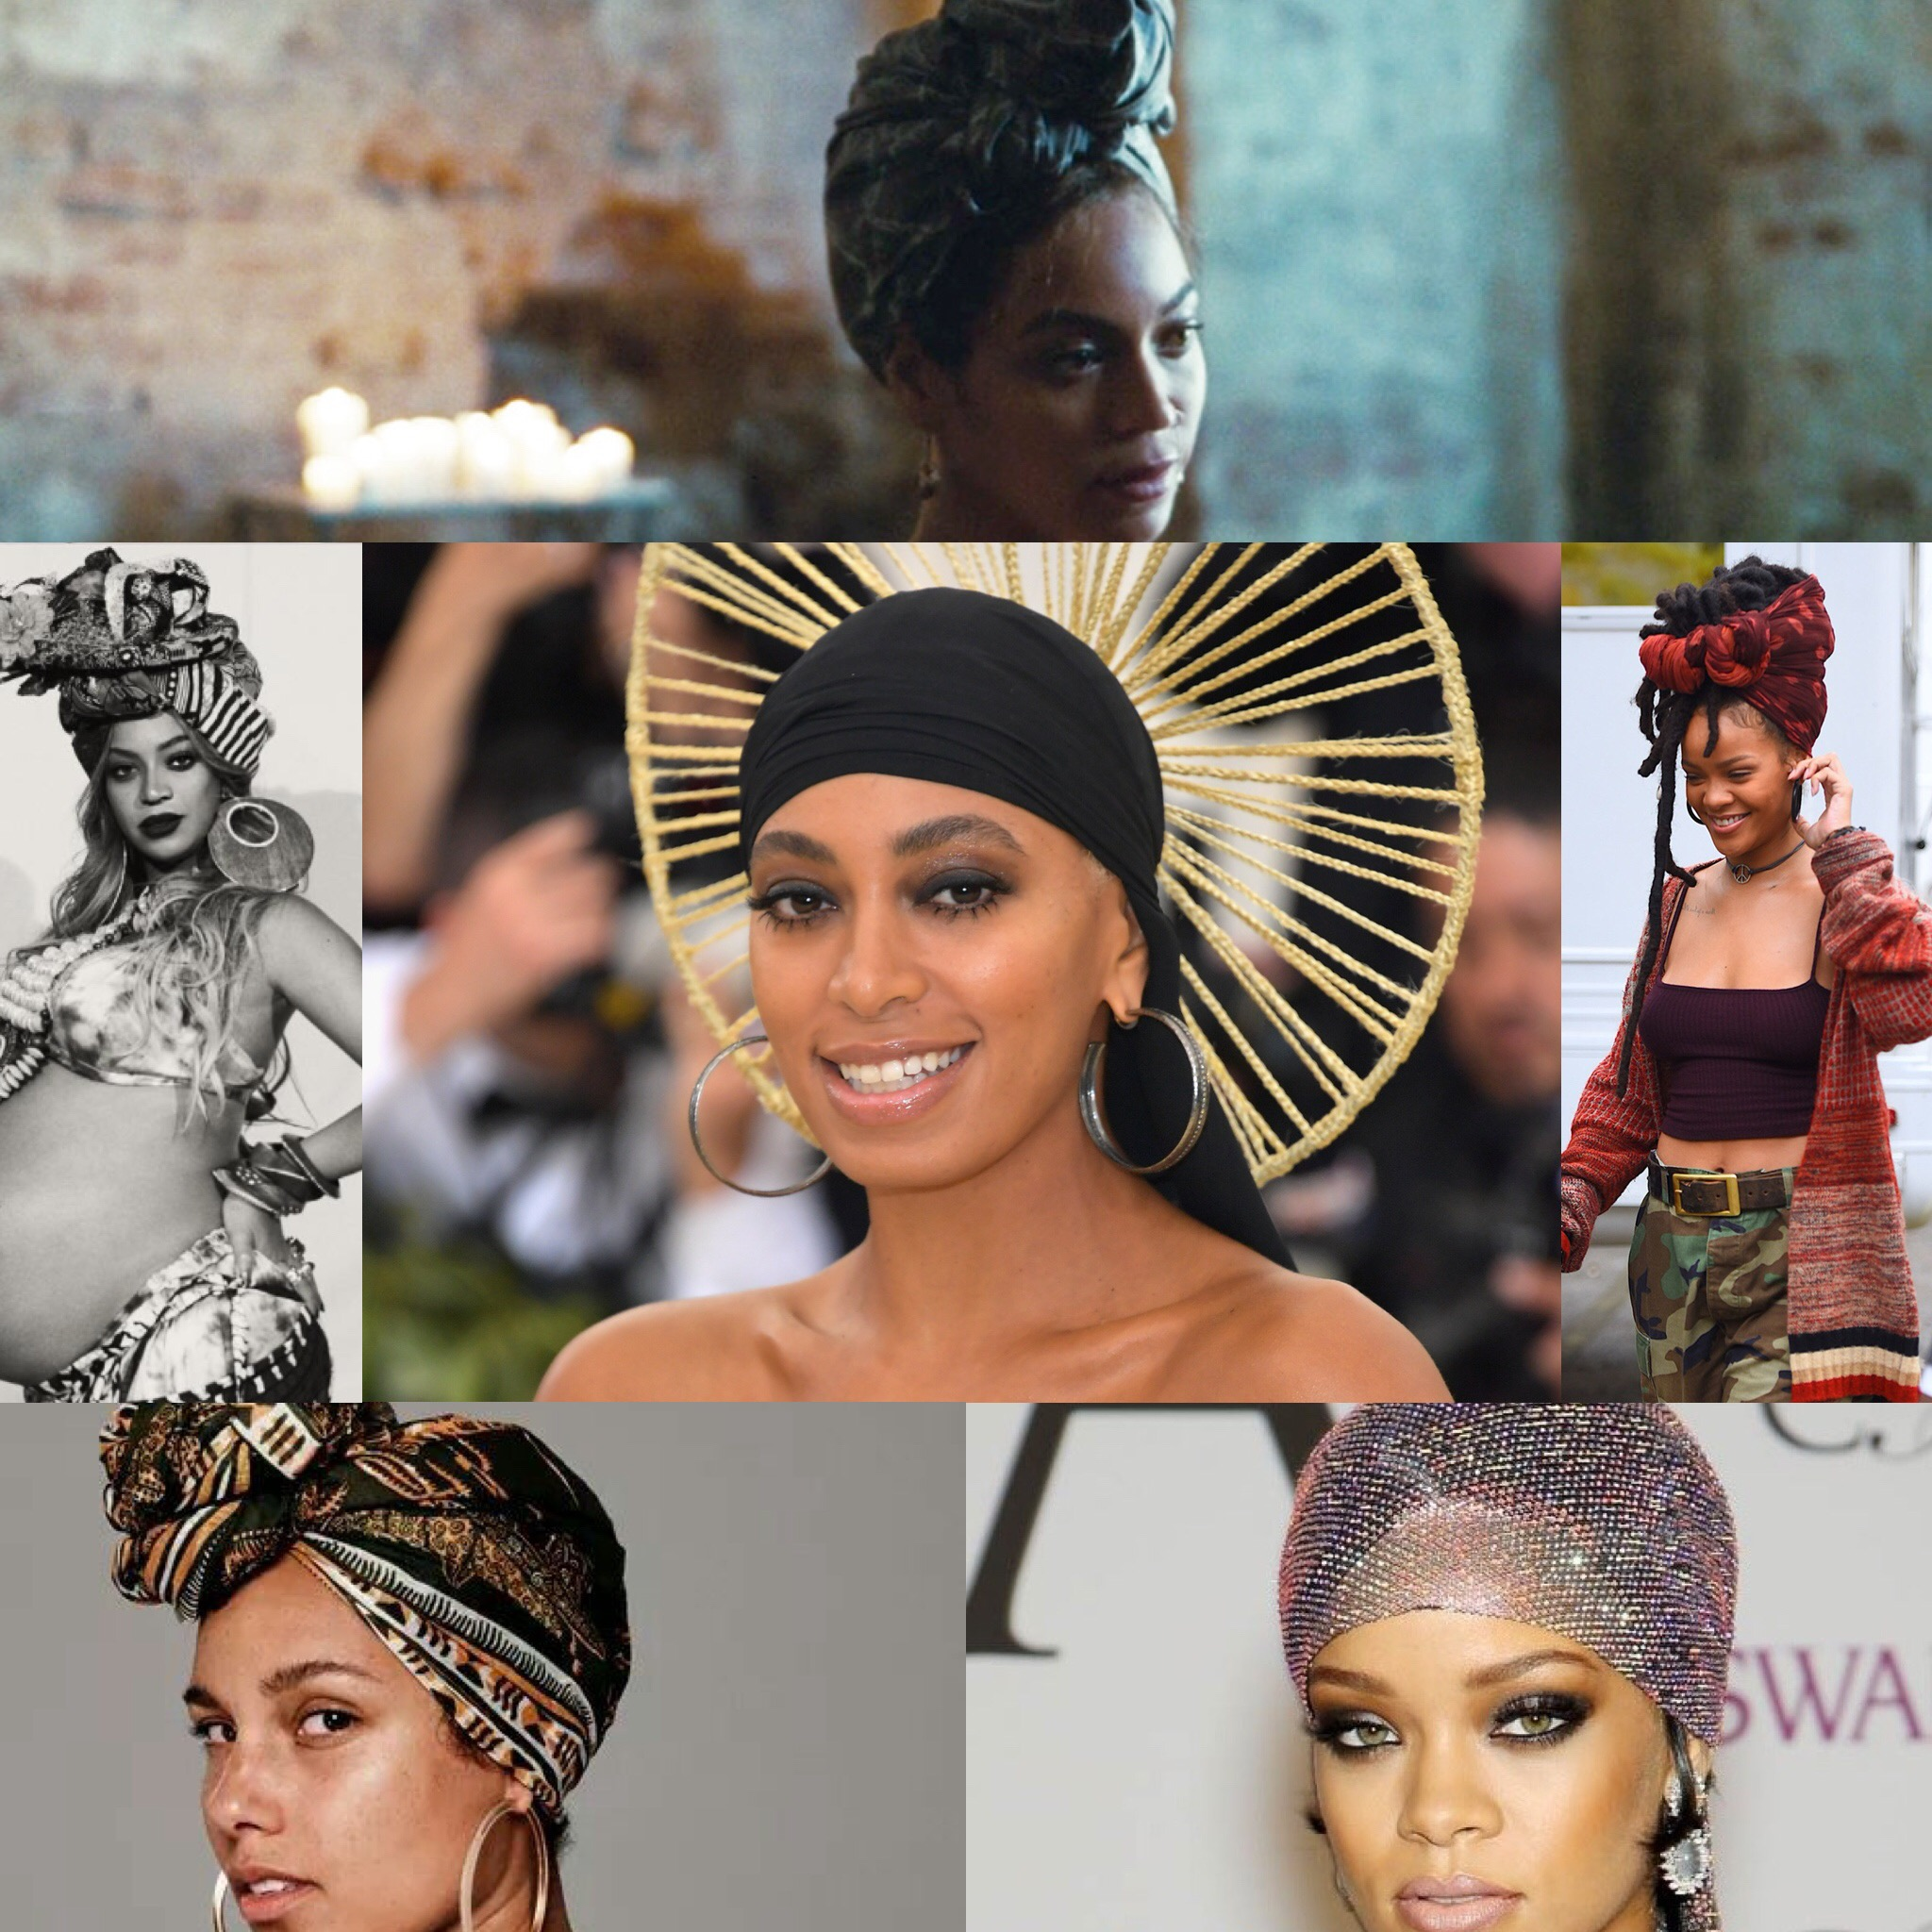 From left to right: Clip from  Beyonce 's Lemonade,  Beyonce 's Pregnancy Shoot,  Solange  at the Met Gala,  Rihanna  on the set of Ocean's 8, Headshot of  Alicia Keys ,  Rihanna  at CFDA Awards